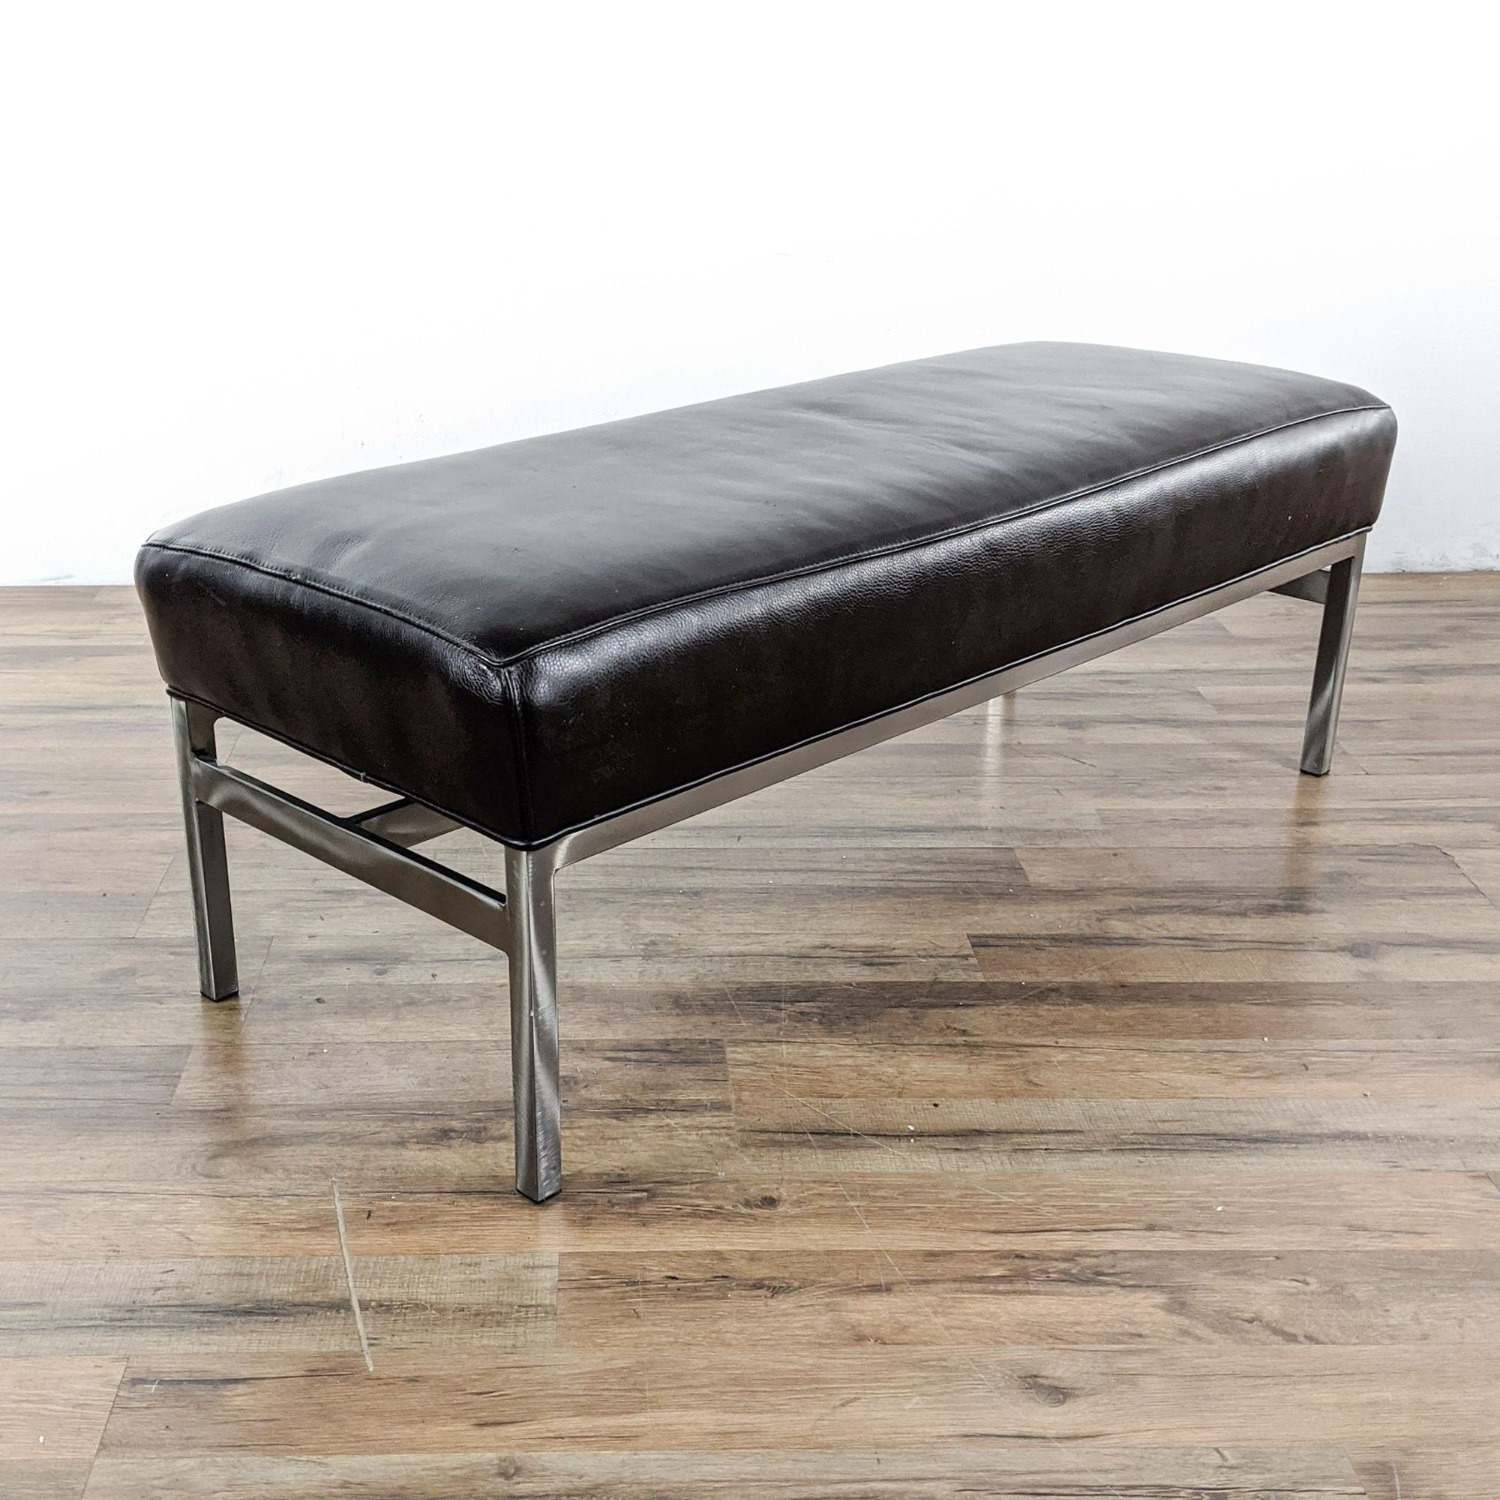 Room & Board Leather and Steel Bench  - image-1